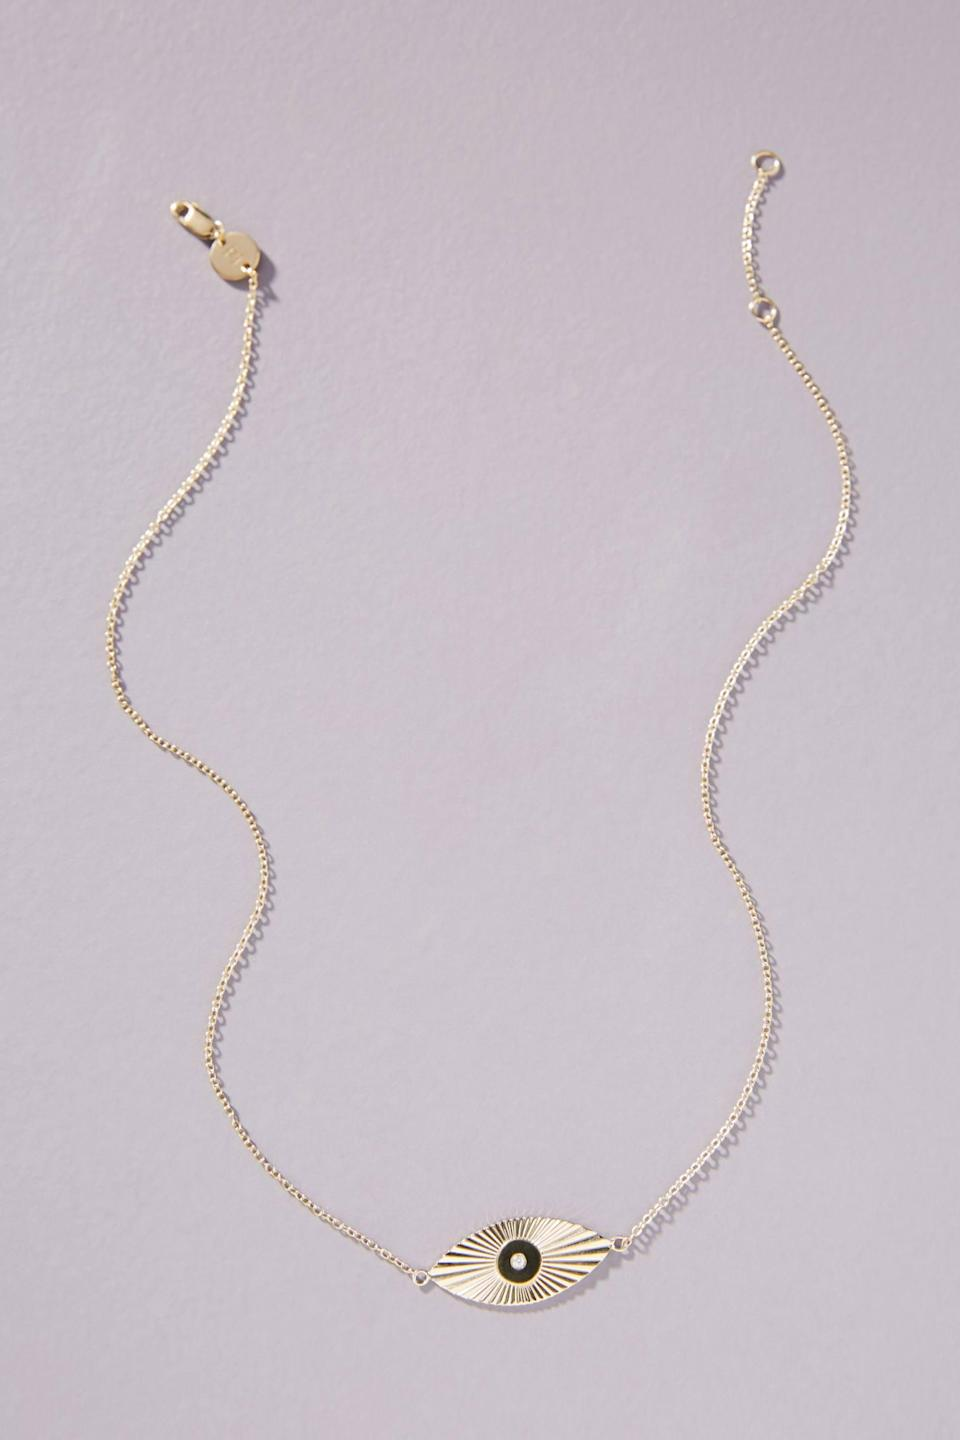 "<br> <br> <strong>Jennifer Zeuner</strong> Rafaella Spirit Eye Necklace, $, available at <a href=""https://go.skimresources.com/?id=30283X879131&url=https%3A%2F%2Fwww.anthropologie.com%2Fshop%2Fjennifer-zeuner-jewelry-rafaella-spirit-eye-necklace%3Fcategory%3DSEARCHRESULTS%26color%3D070"" rel=""nofollow noopener"" target=""_blank"" data-ylk=""slk:Anthropologie"" class=""link rapid-noclick-resp"">Anthropologie</a>"